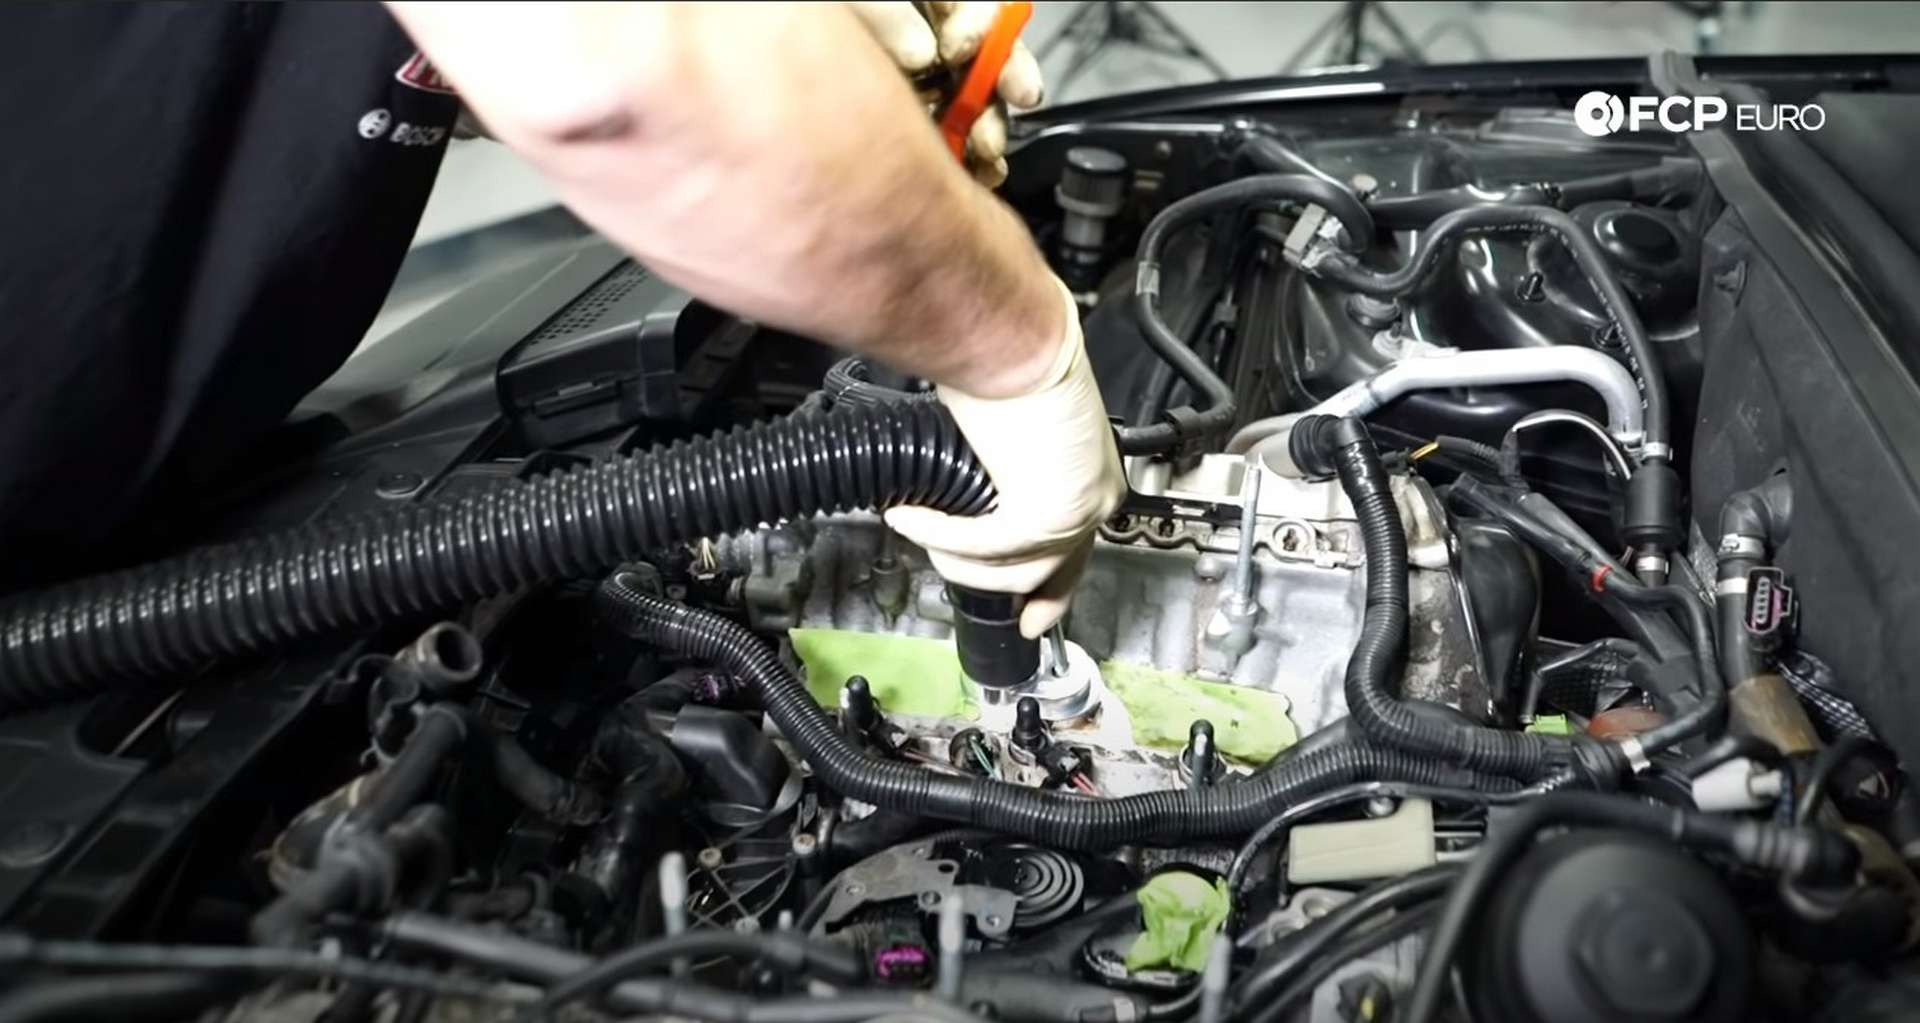 How To Walnut Blast Intake Valves On An Audi 3.0t Engine